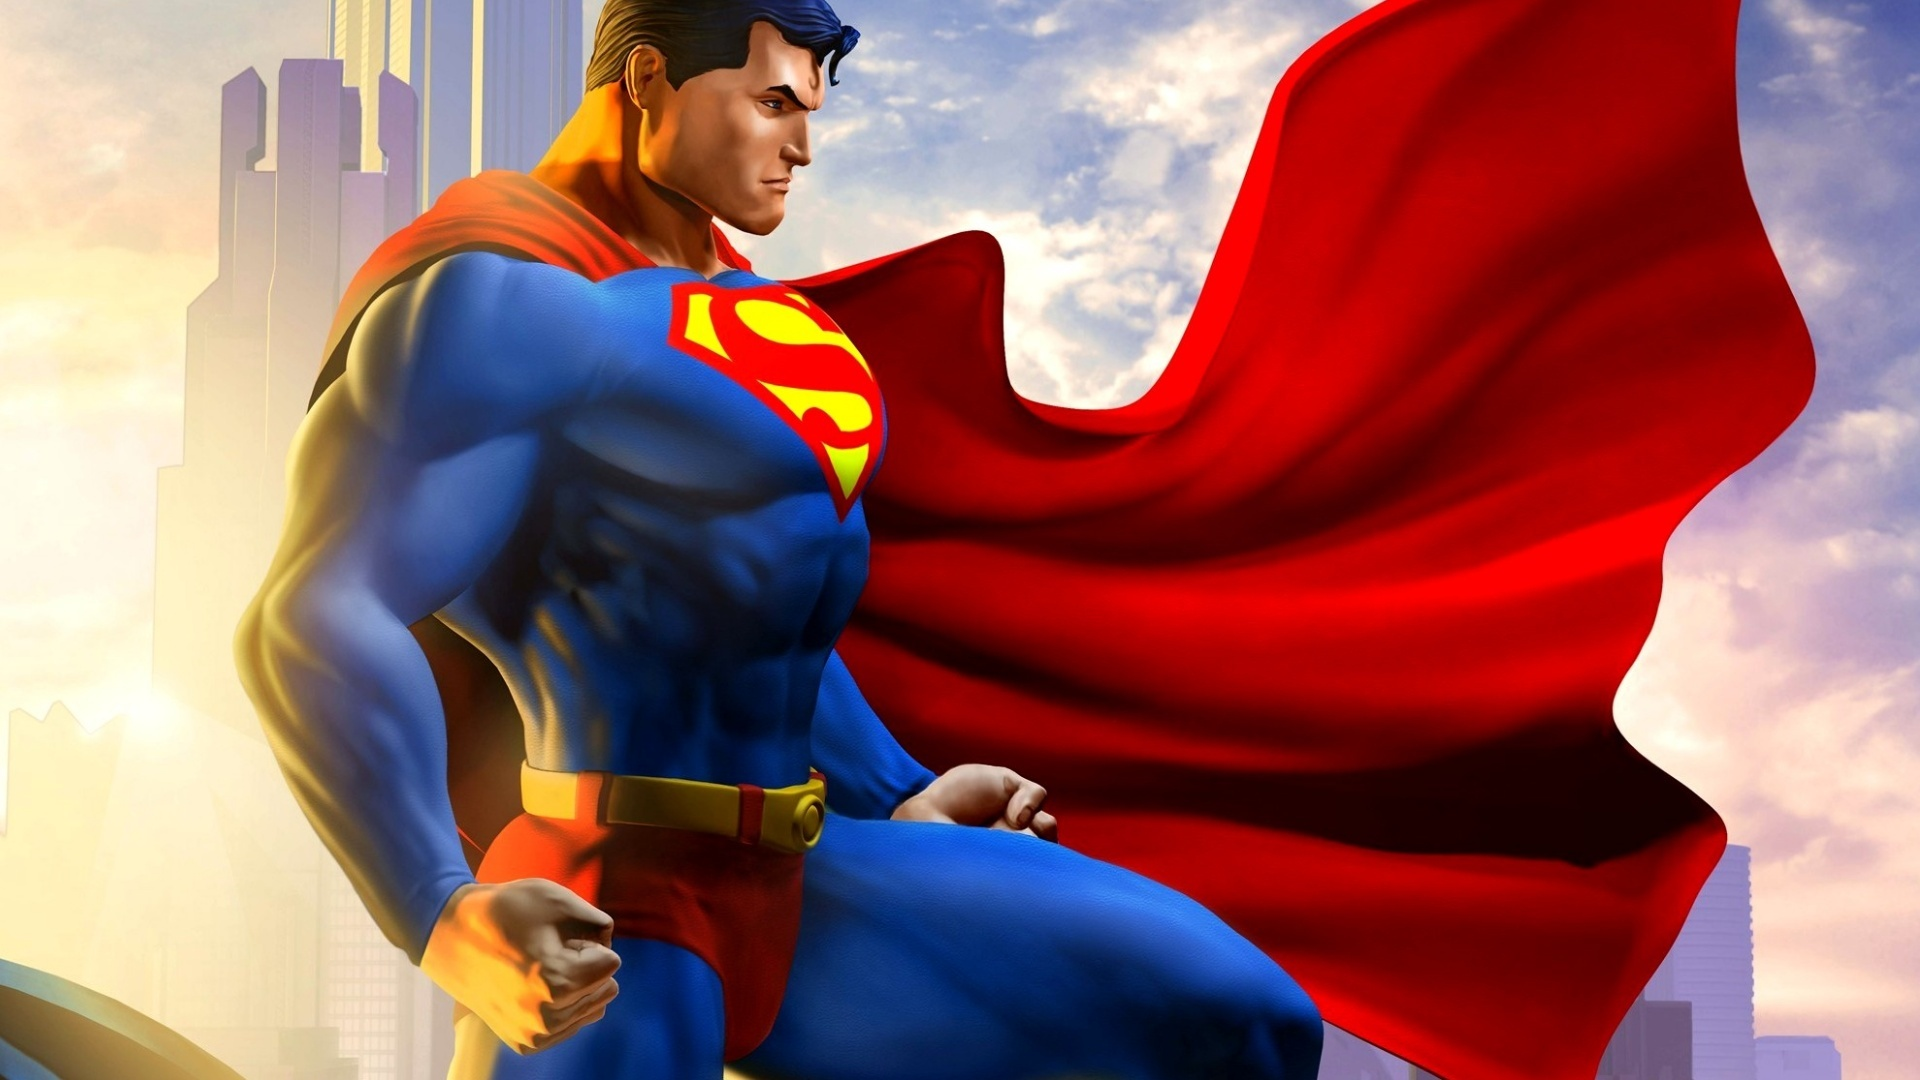 superman wallpapers de superman fondos de escritorio de superman